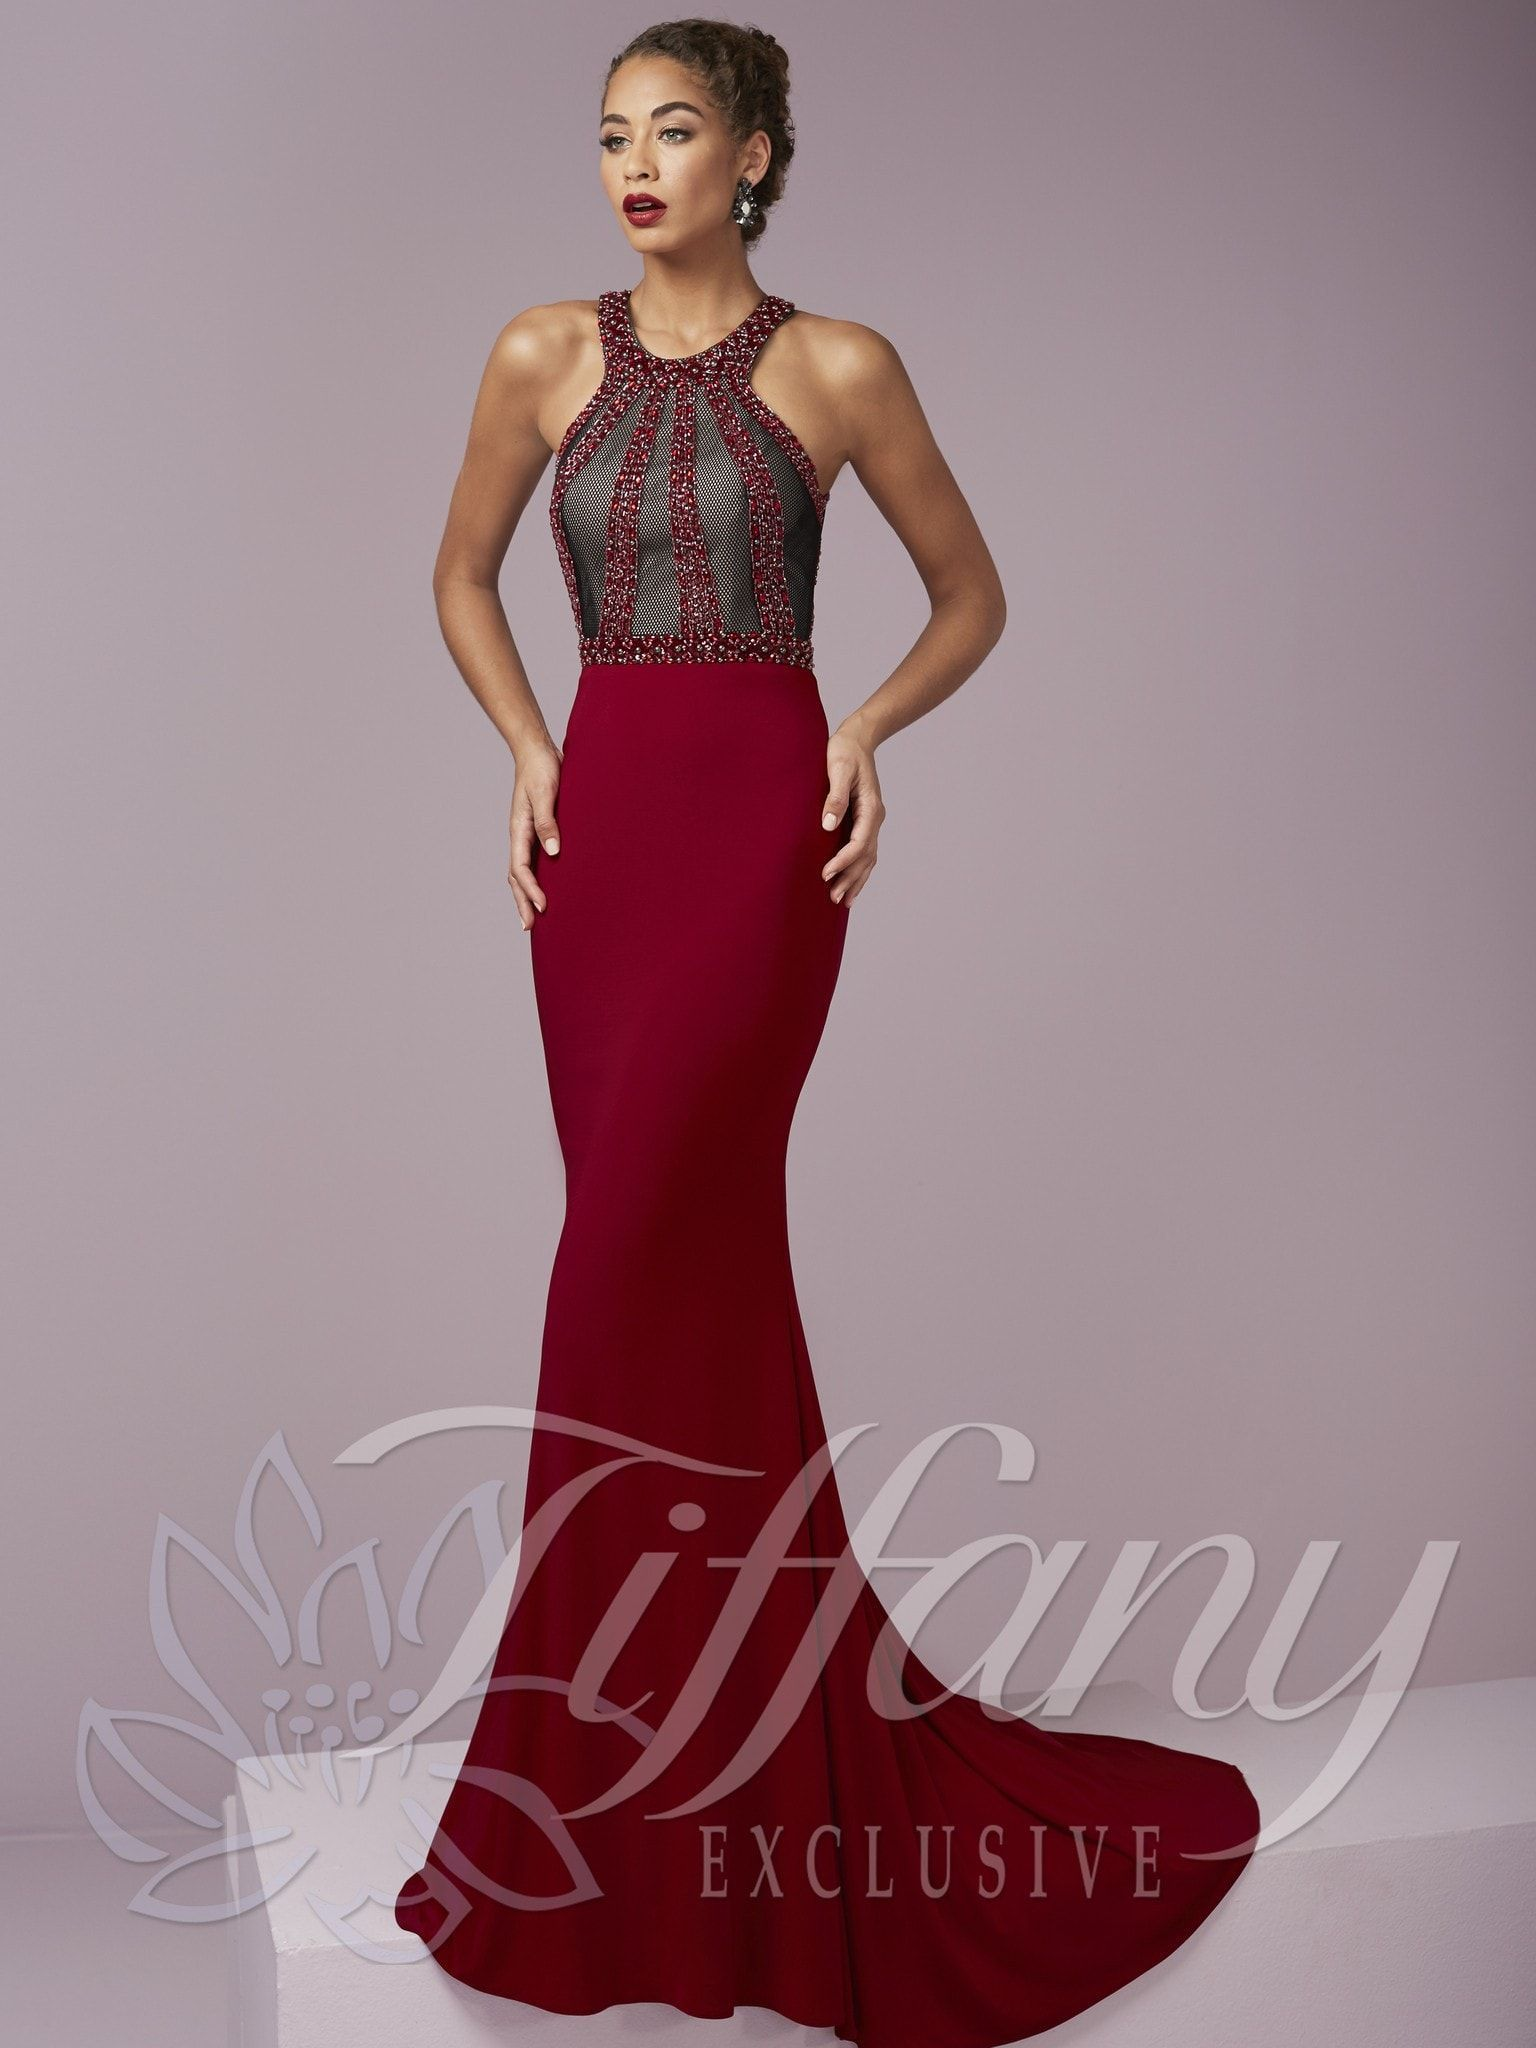 Tiffany exclusives red halter neck cut out back prom dress